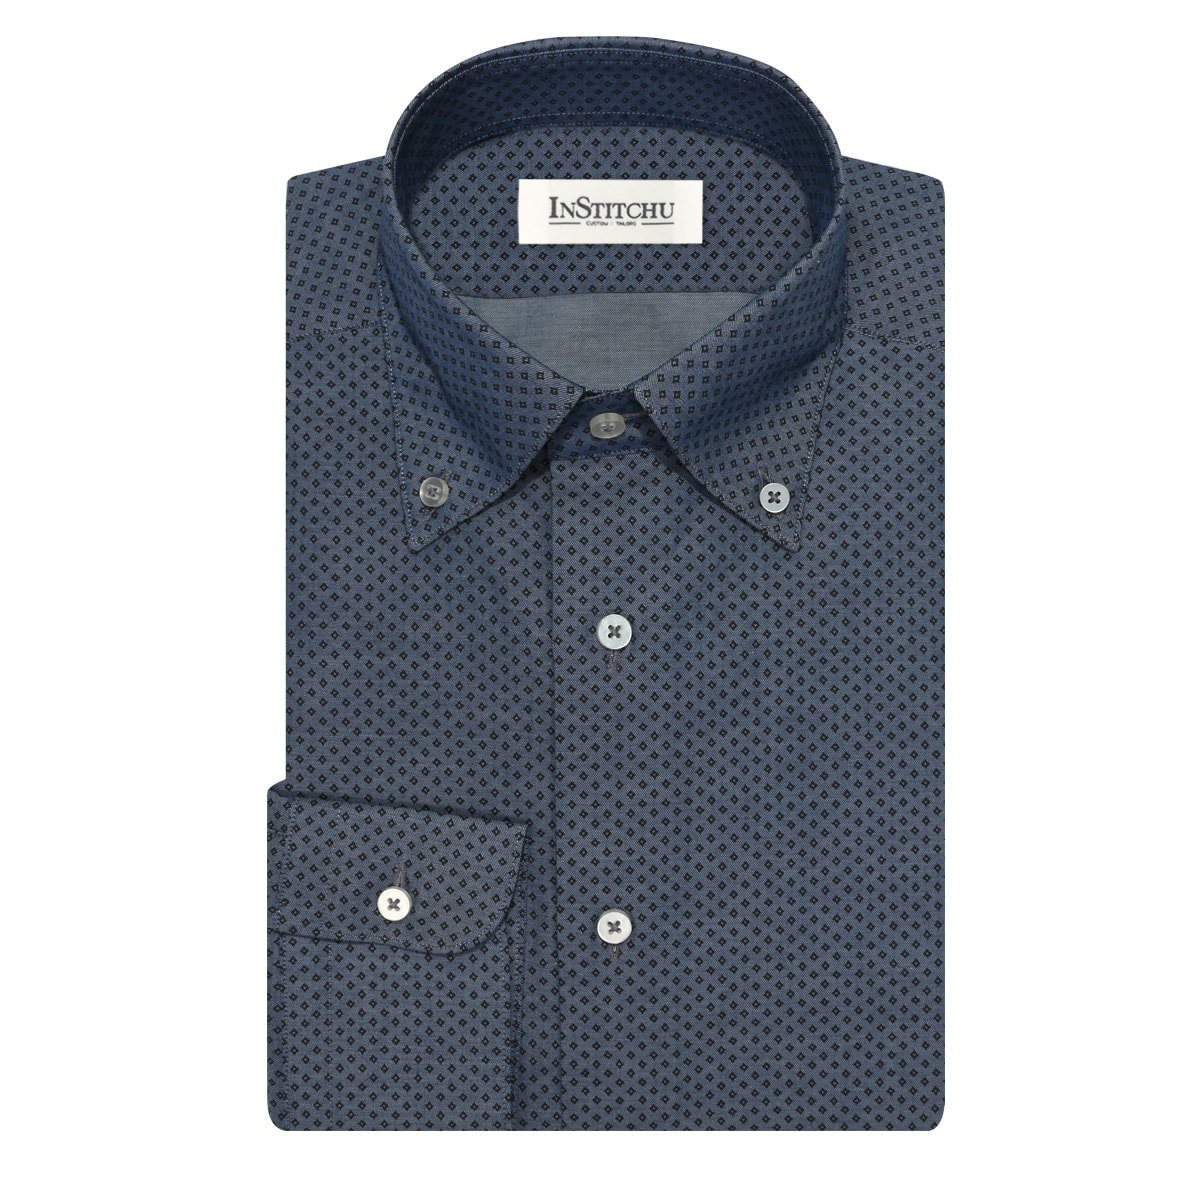 InStitchu Collection The Discovery Navy Print Shirt